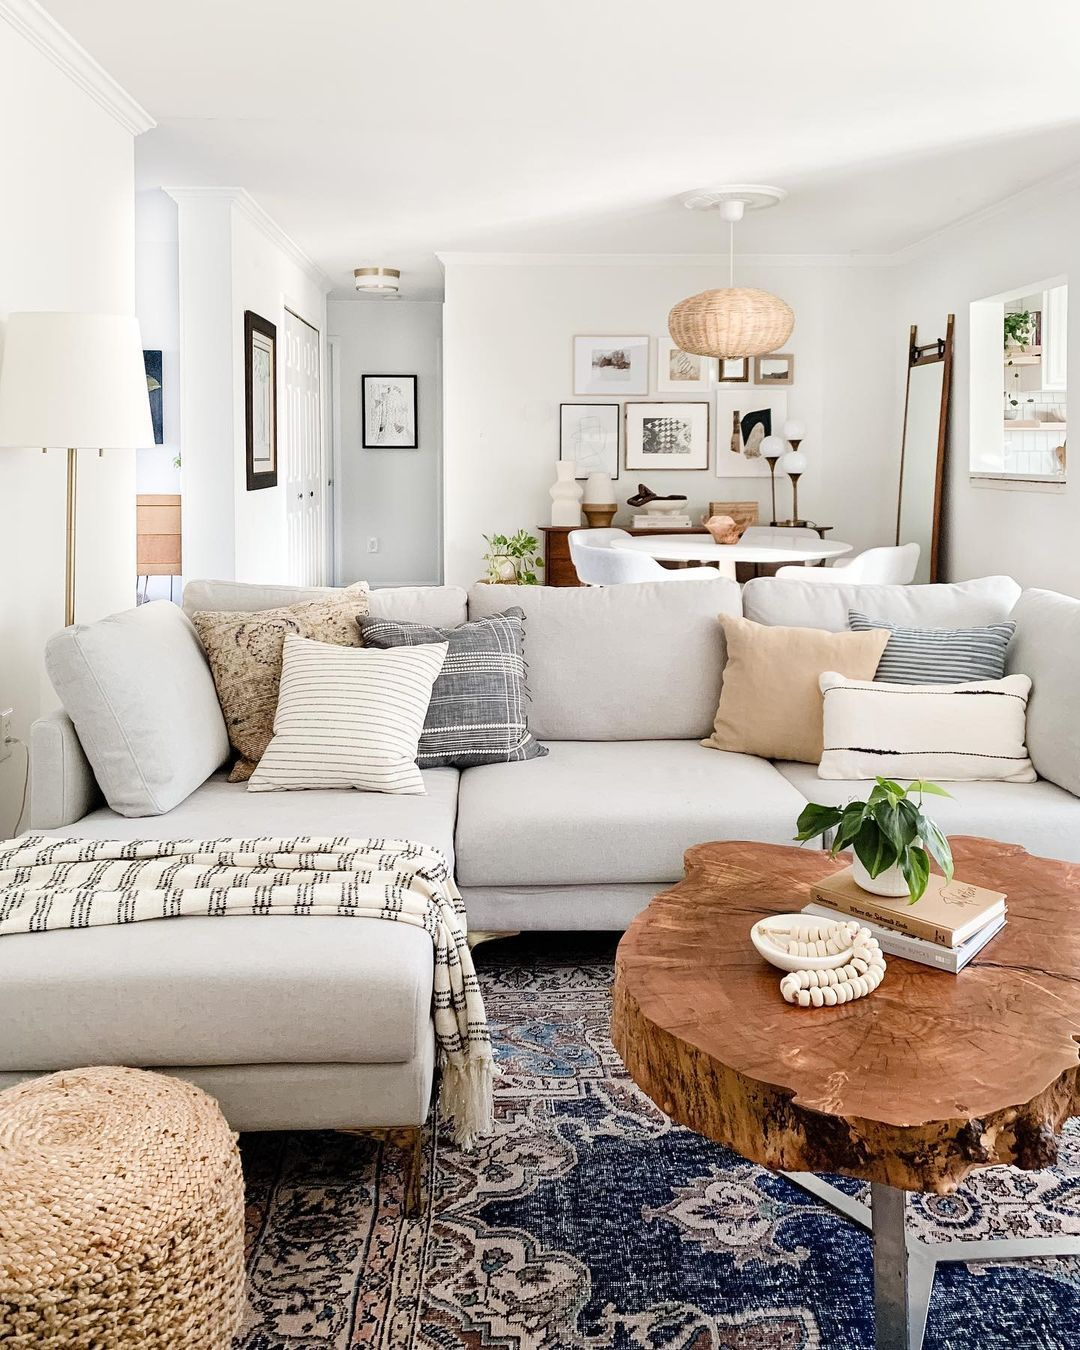 Kc Design Co Kim Christian On Instagram Part Of Our Living Room Spring Refresh Is This Super Aweso In 2021 Oriental Rug Living Room Rugs In Living Room Best Sofa